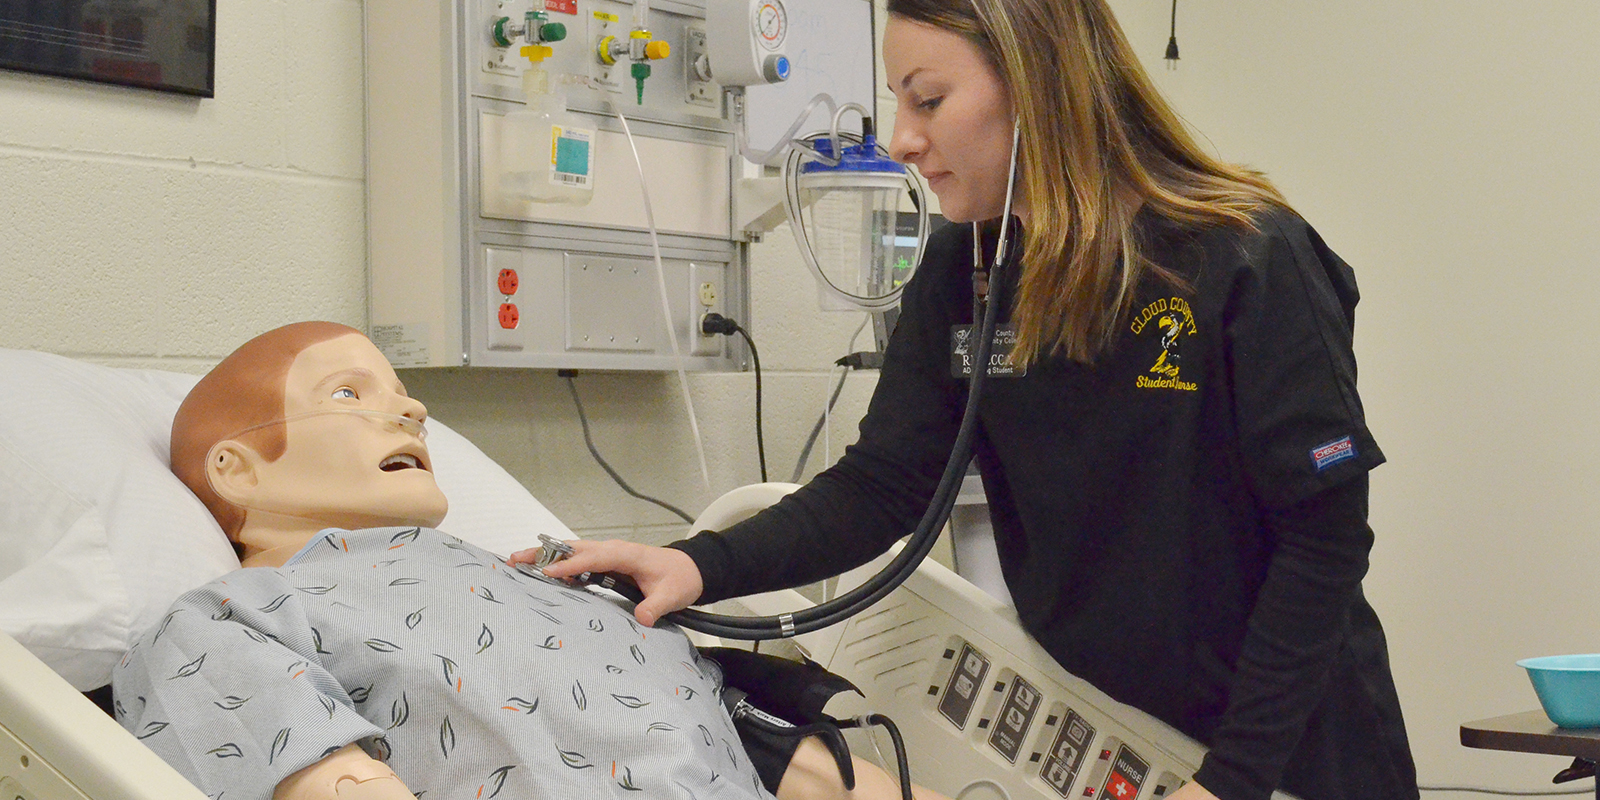 A nursing student checking vital signs.